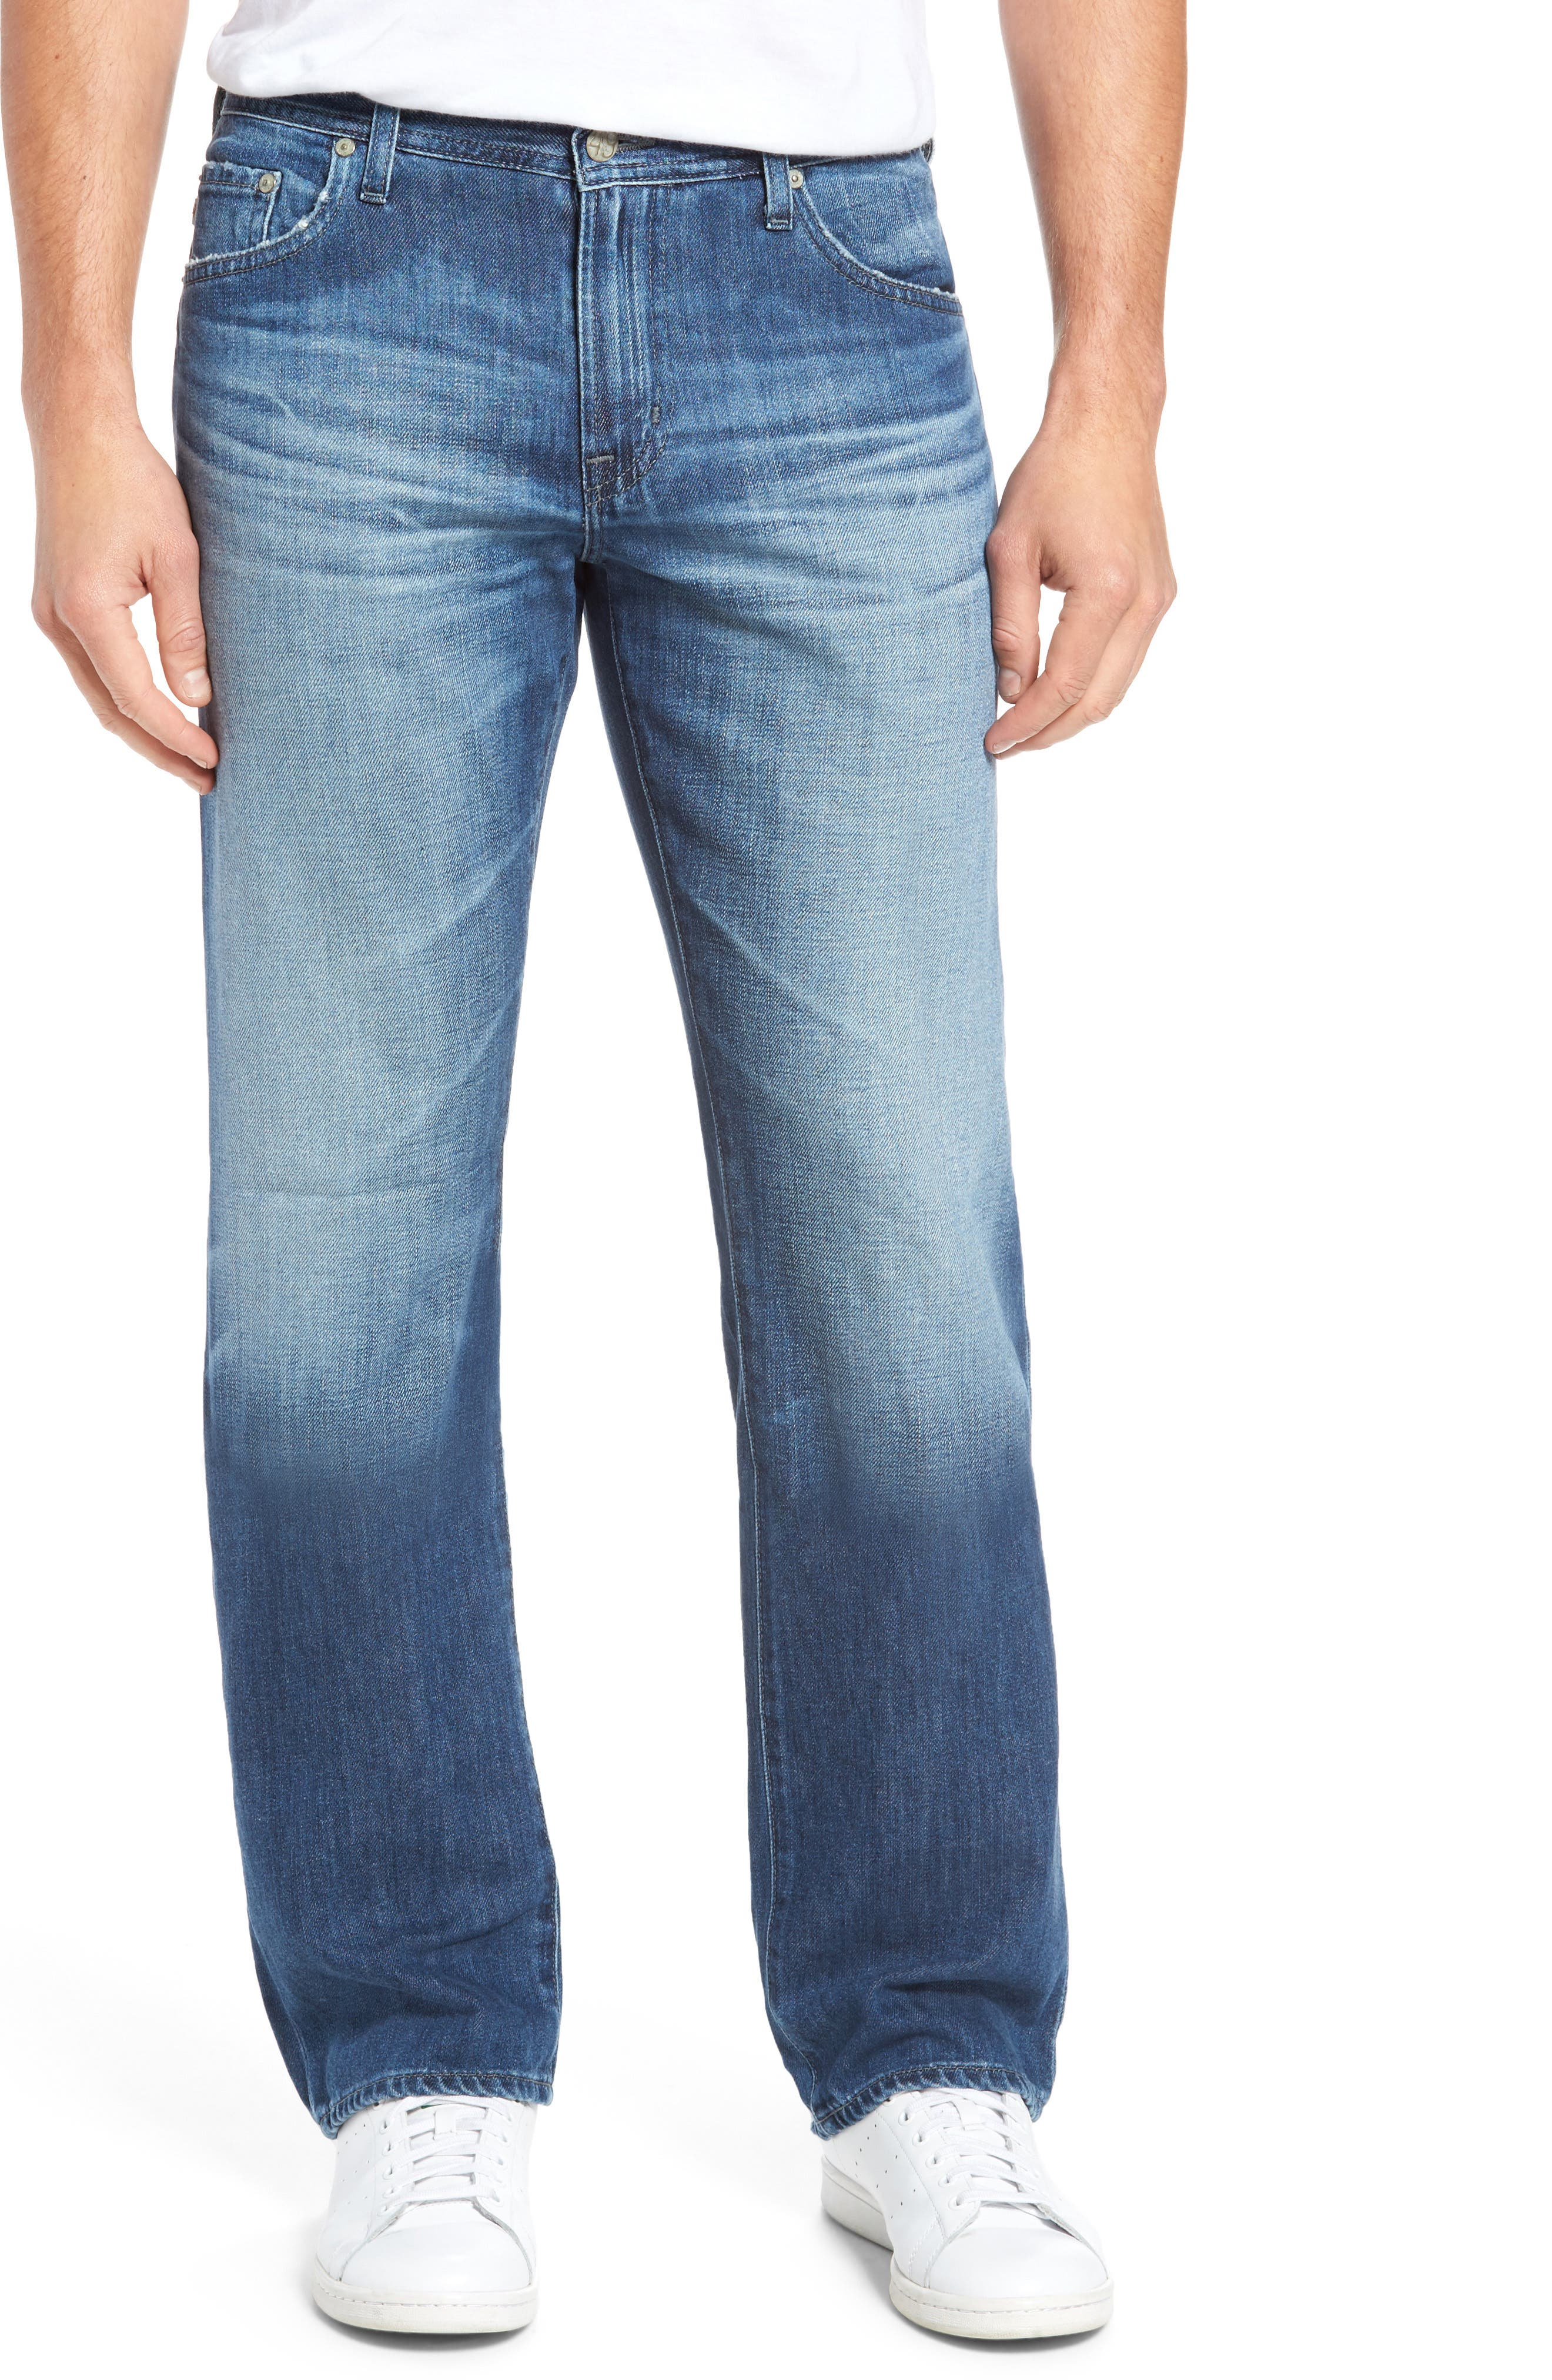 Protégé Relaxed Fit Jeans,                         Main,                         color, 15 Years Forgery